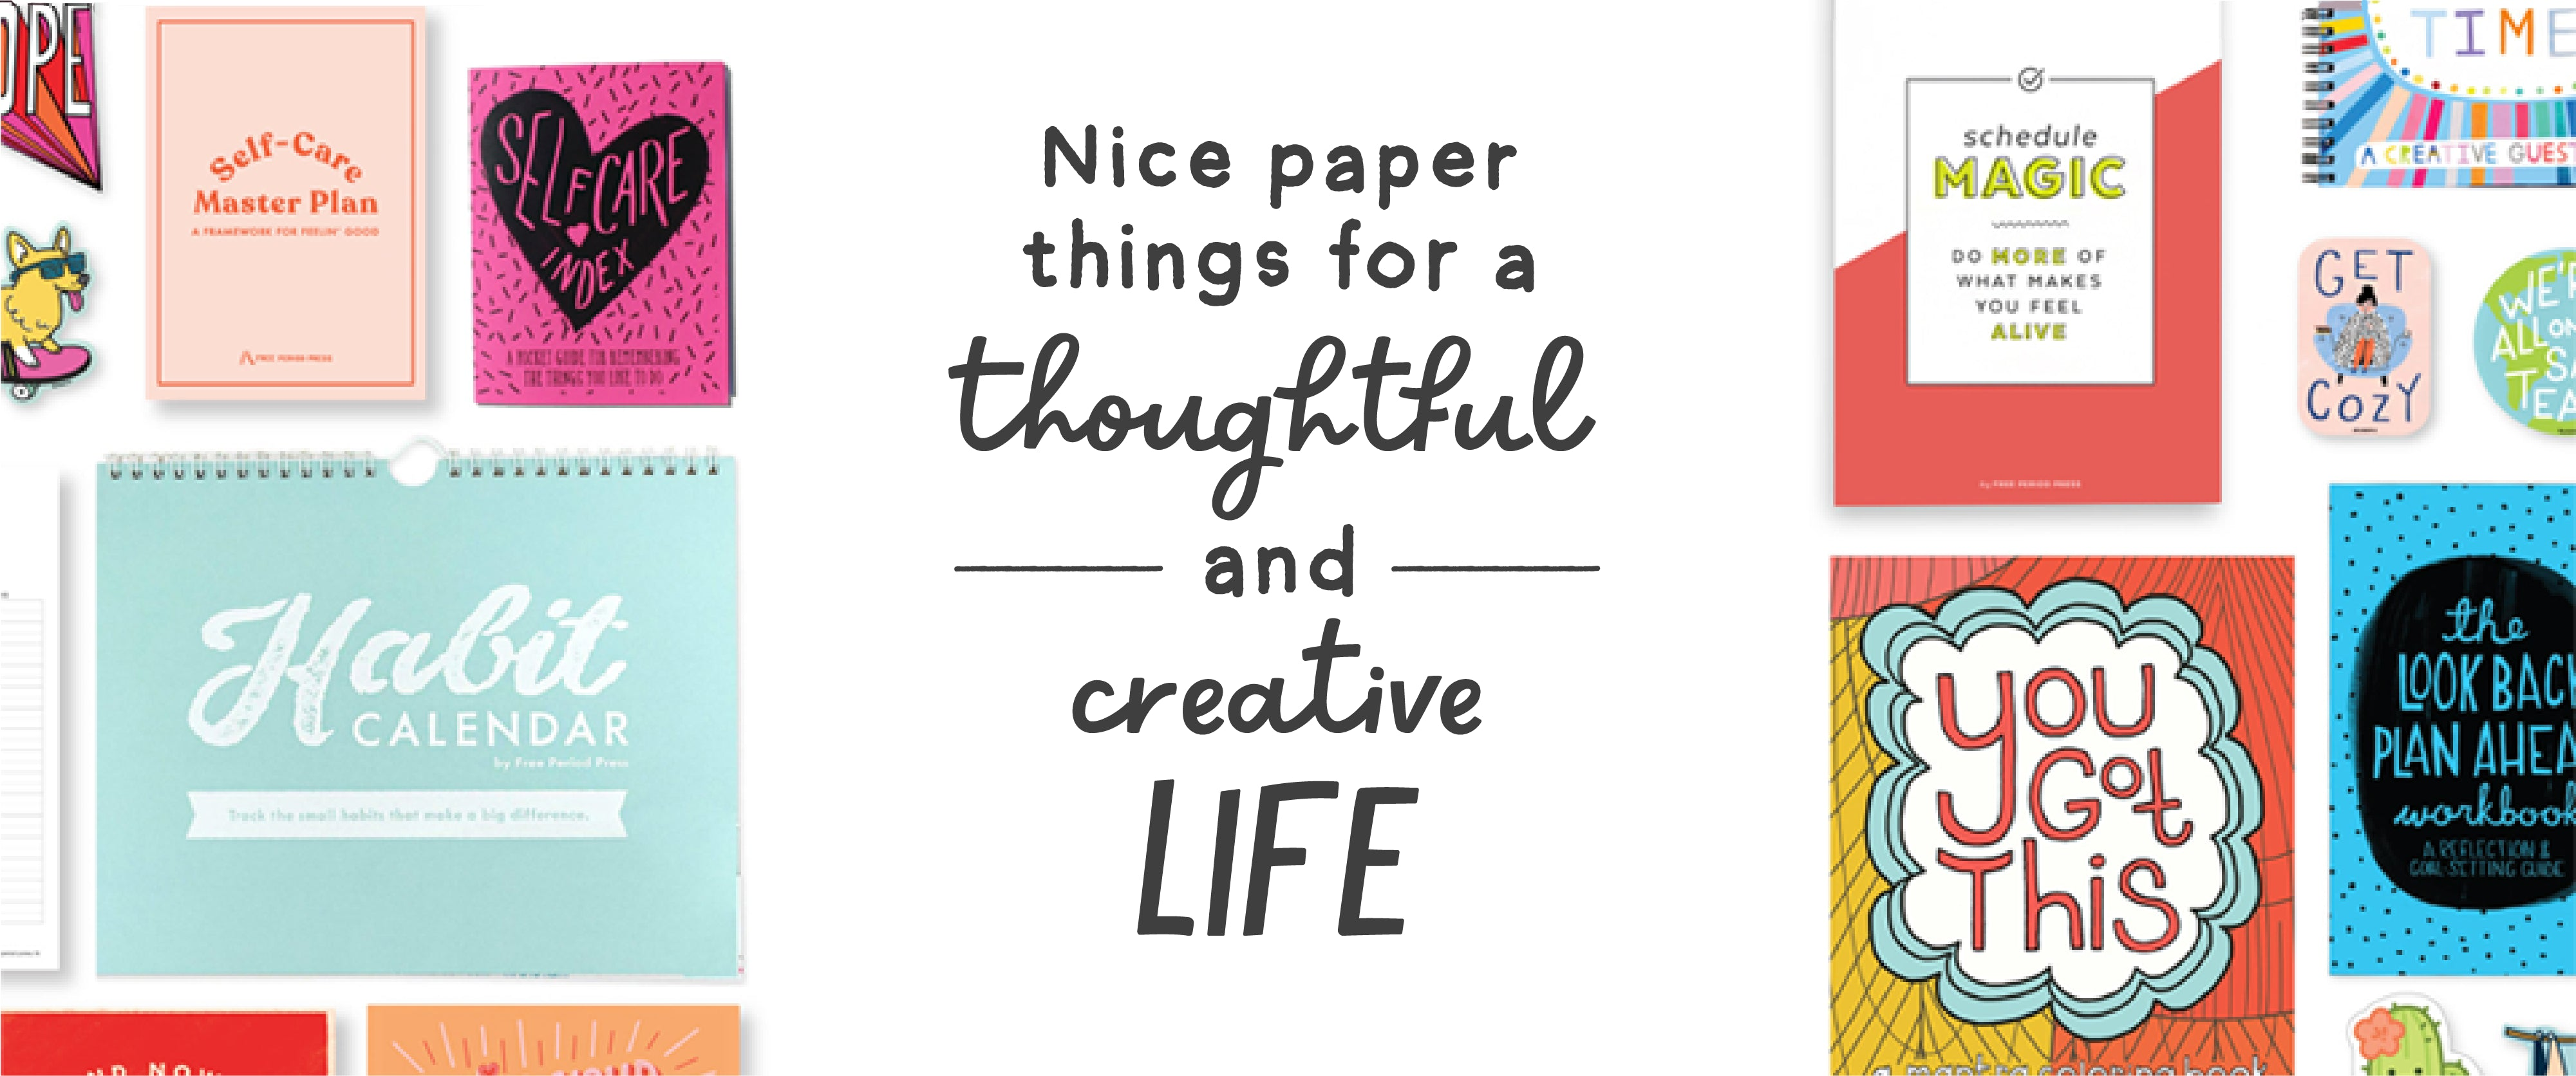 Nice paper things for a thoughtful and creative life